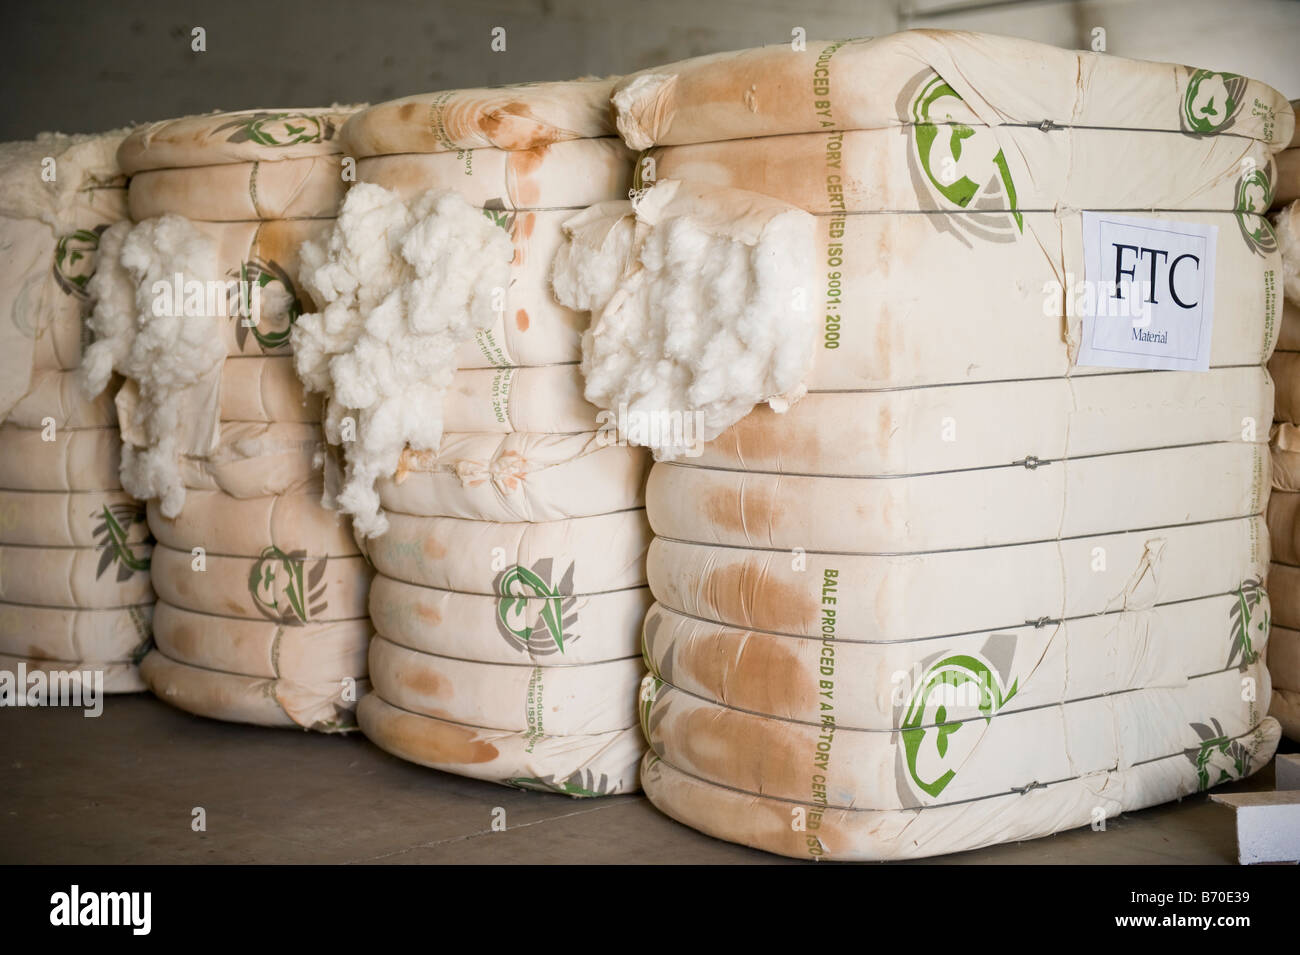 India Indore , spinning mill produce yarn from fair trade cotton, bales with FTC fair trade cotton label - Stock Image